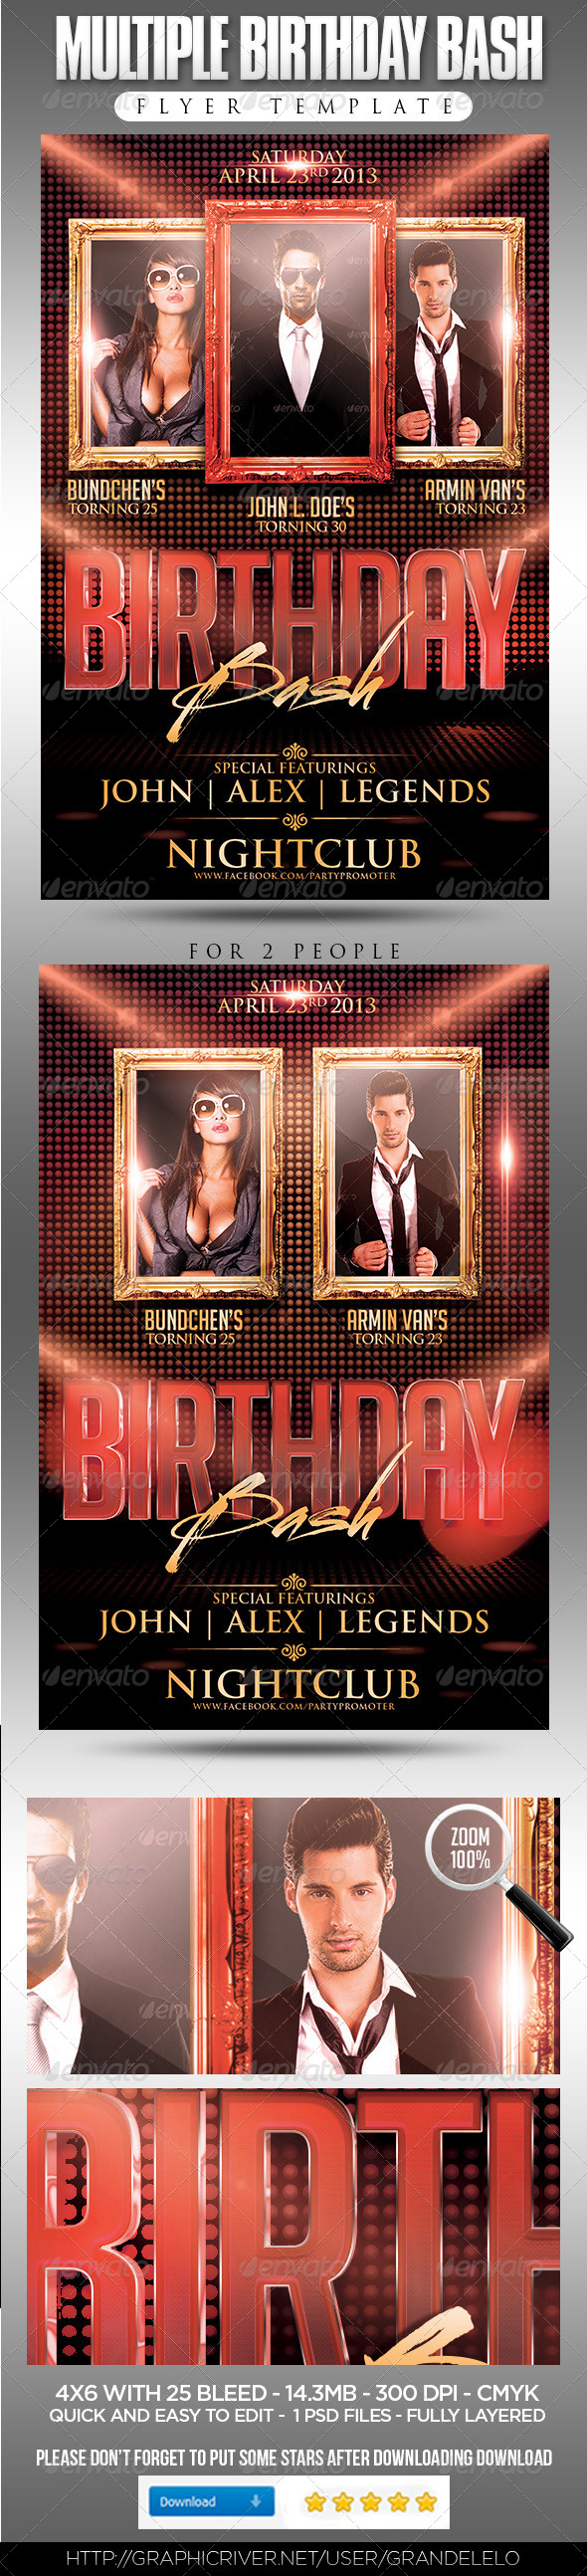 GraphicRiver Multiple Birthday Bash Flyer Template 4203626